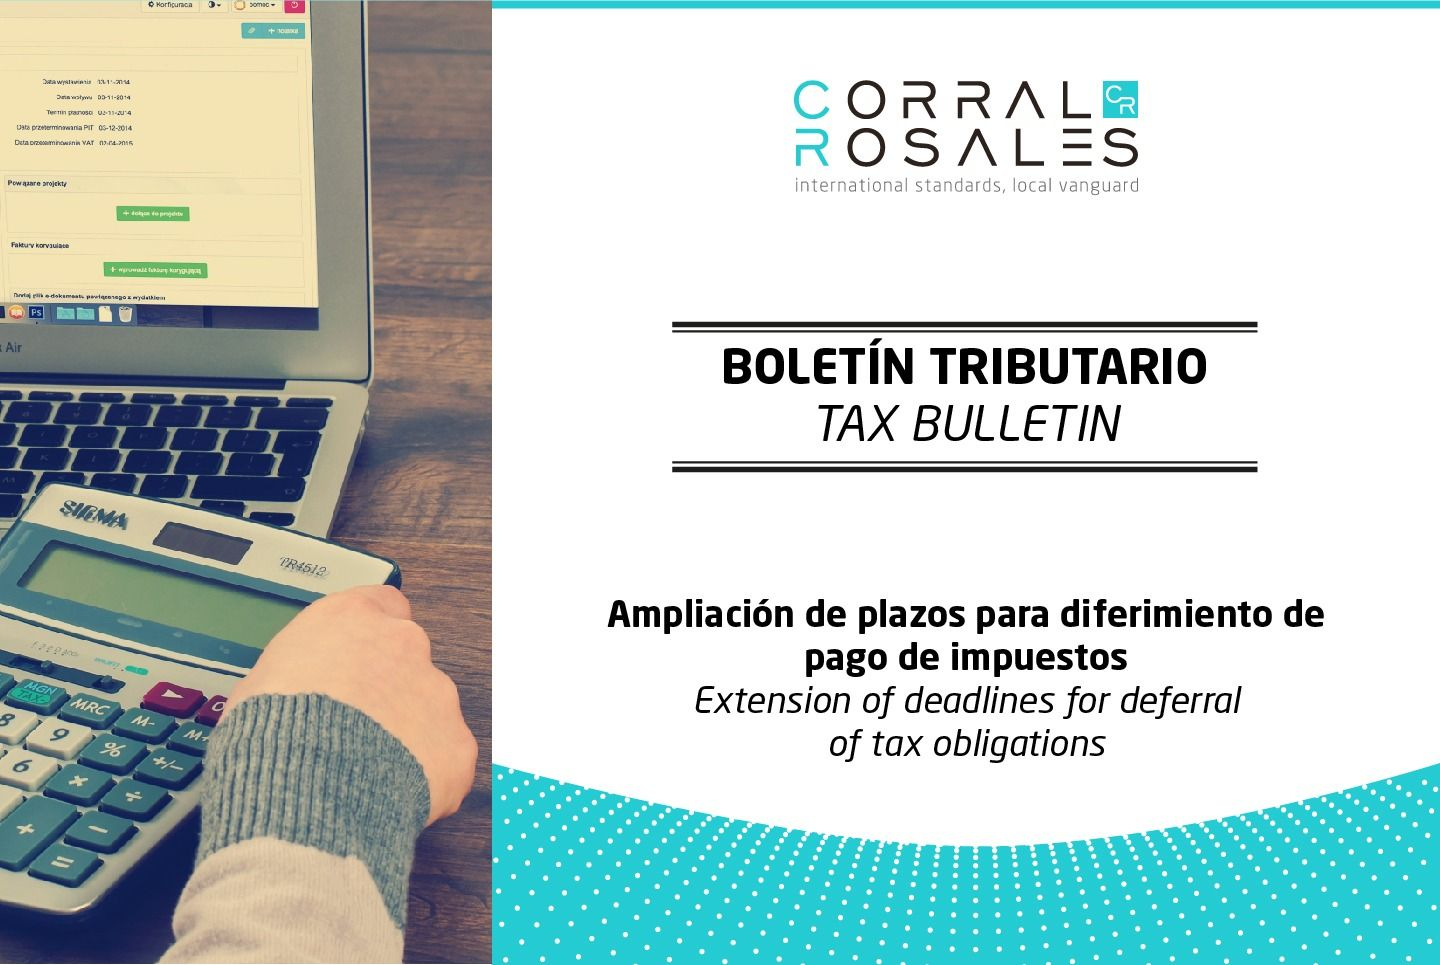 extension-of-deadlines-for-deferral-of-tax-obligations-lawyers-ecuador